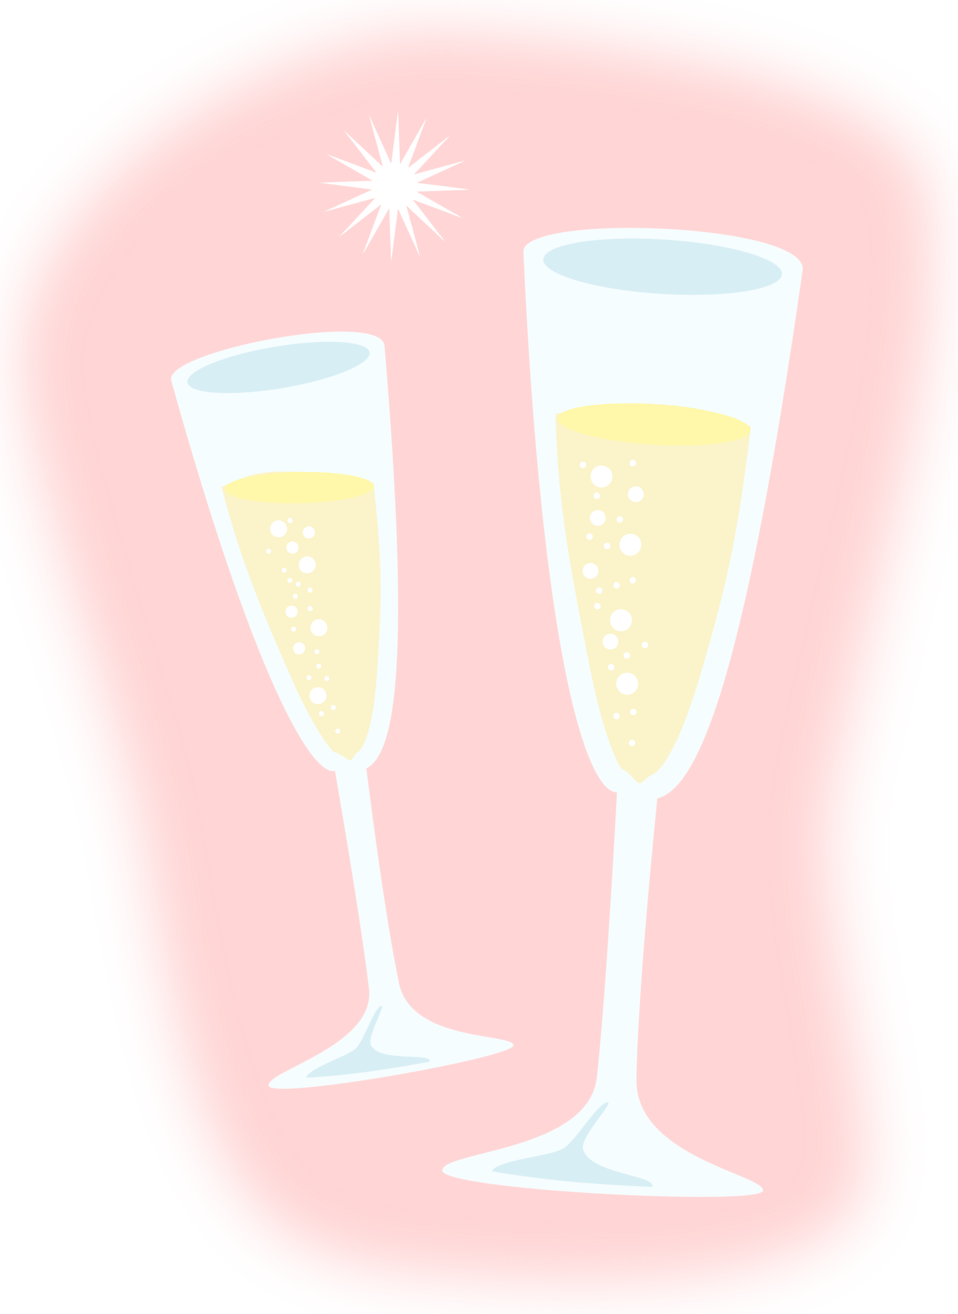 Pink champagne glasses png. Free stock photo illustration